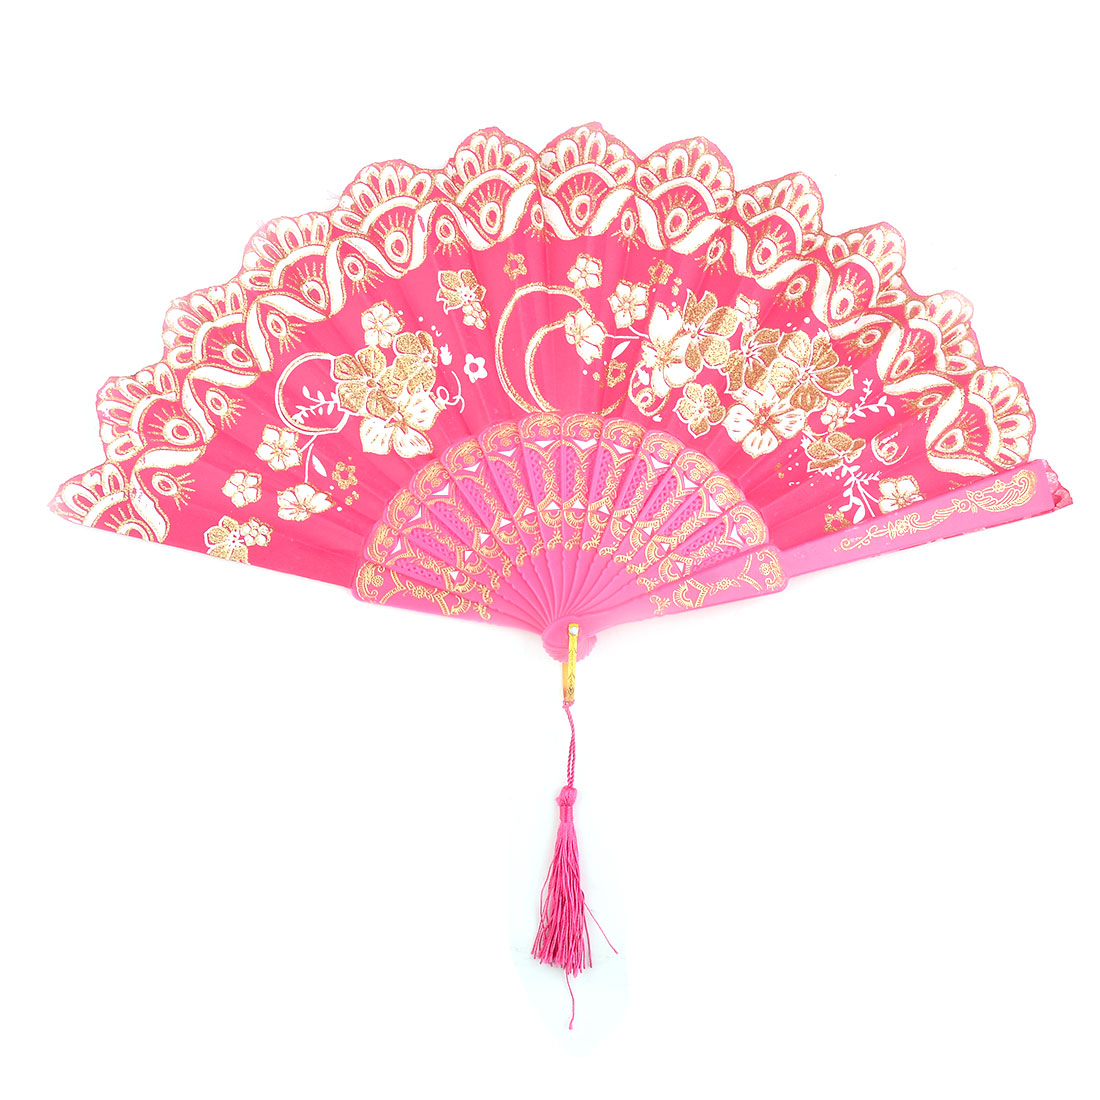 Household Wedding Plastic Cherryblossom Pattern Folding Cooling Dancing Hand Fan Fuchsia